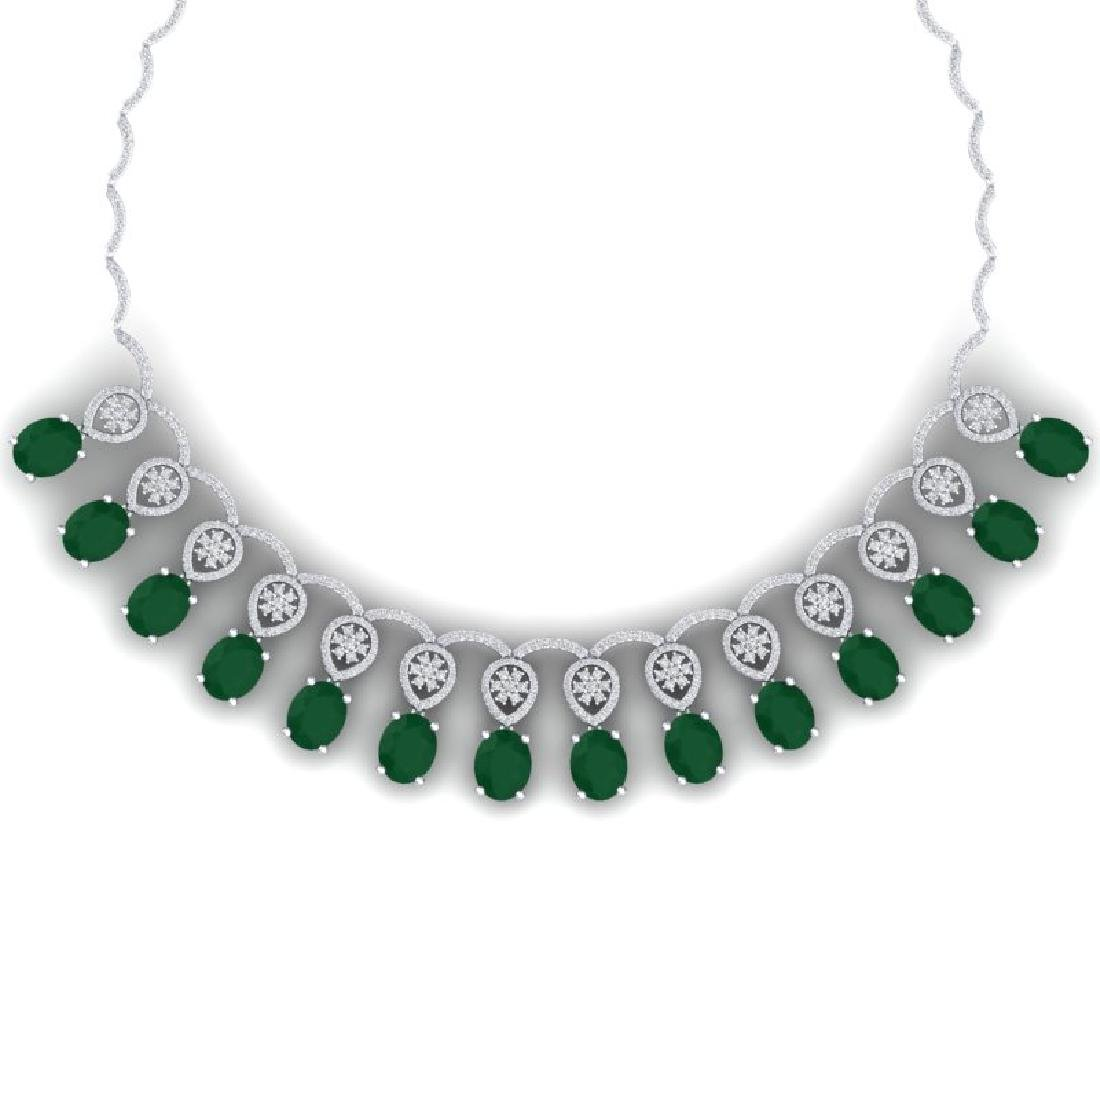 54.05 CTW Royalty Emerald & VS Diamond Necklace 18K